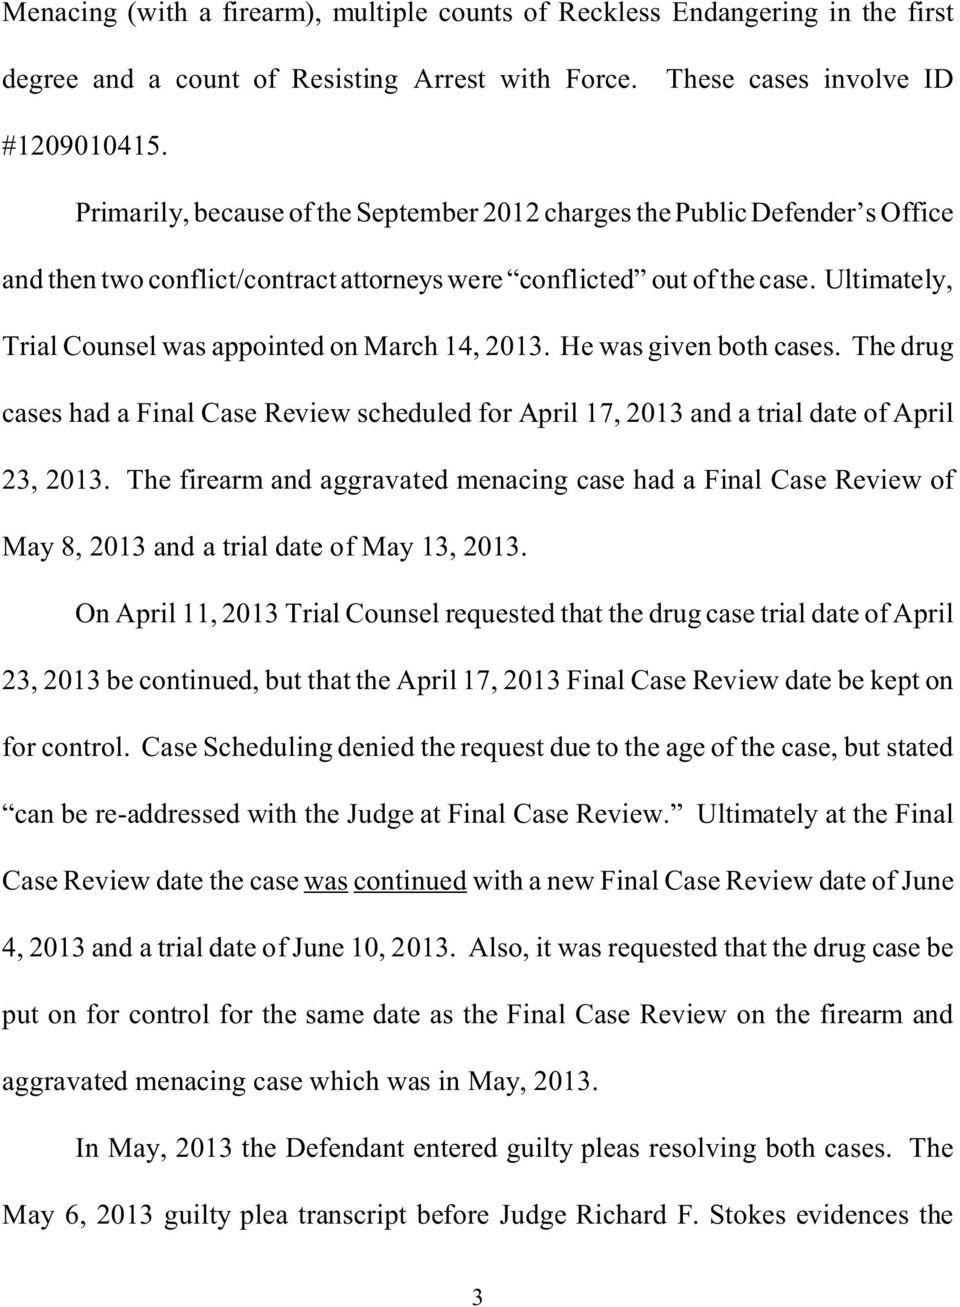 Ultimately, Trial Counsel was appointed on March 14, 2013. He was given both cases. The drug cases had a Final Case Review scheduled for April 17, 2013 and a trial date of April 23, 2013.